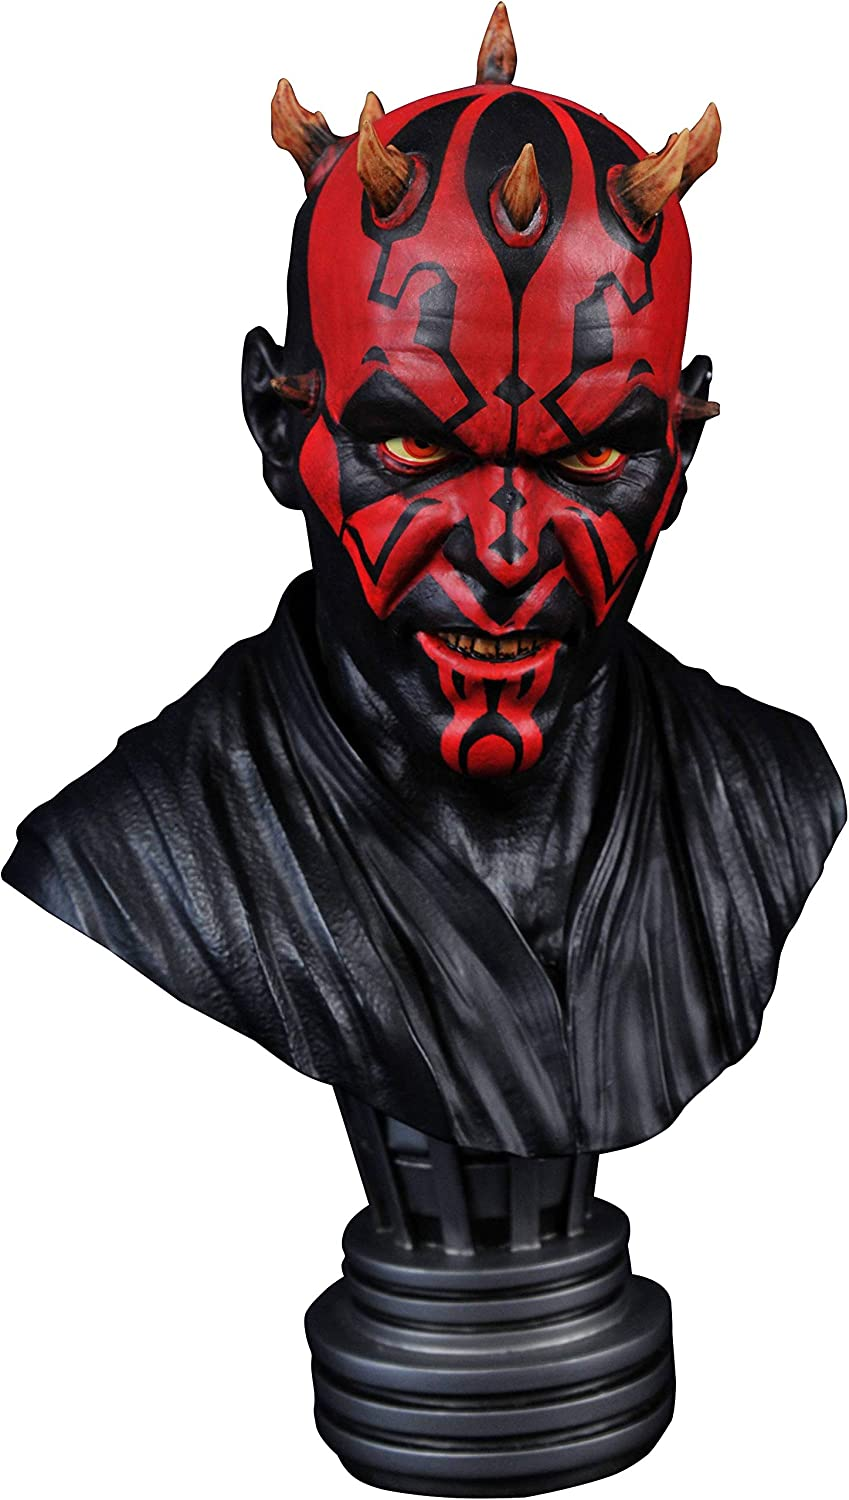 The Phantom Menace Darth Maul Legends in 3-Dimensions 1:2 Scale Bust DIAMOND SELECT TOYS Star Wars